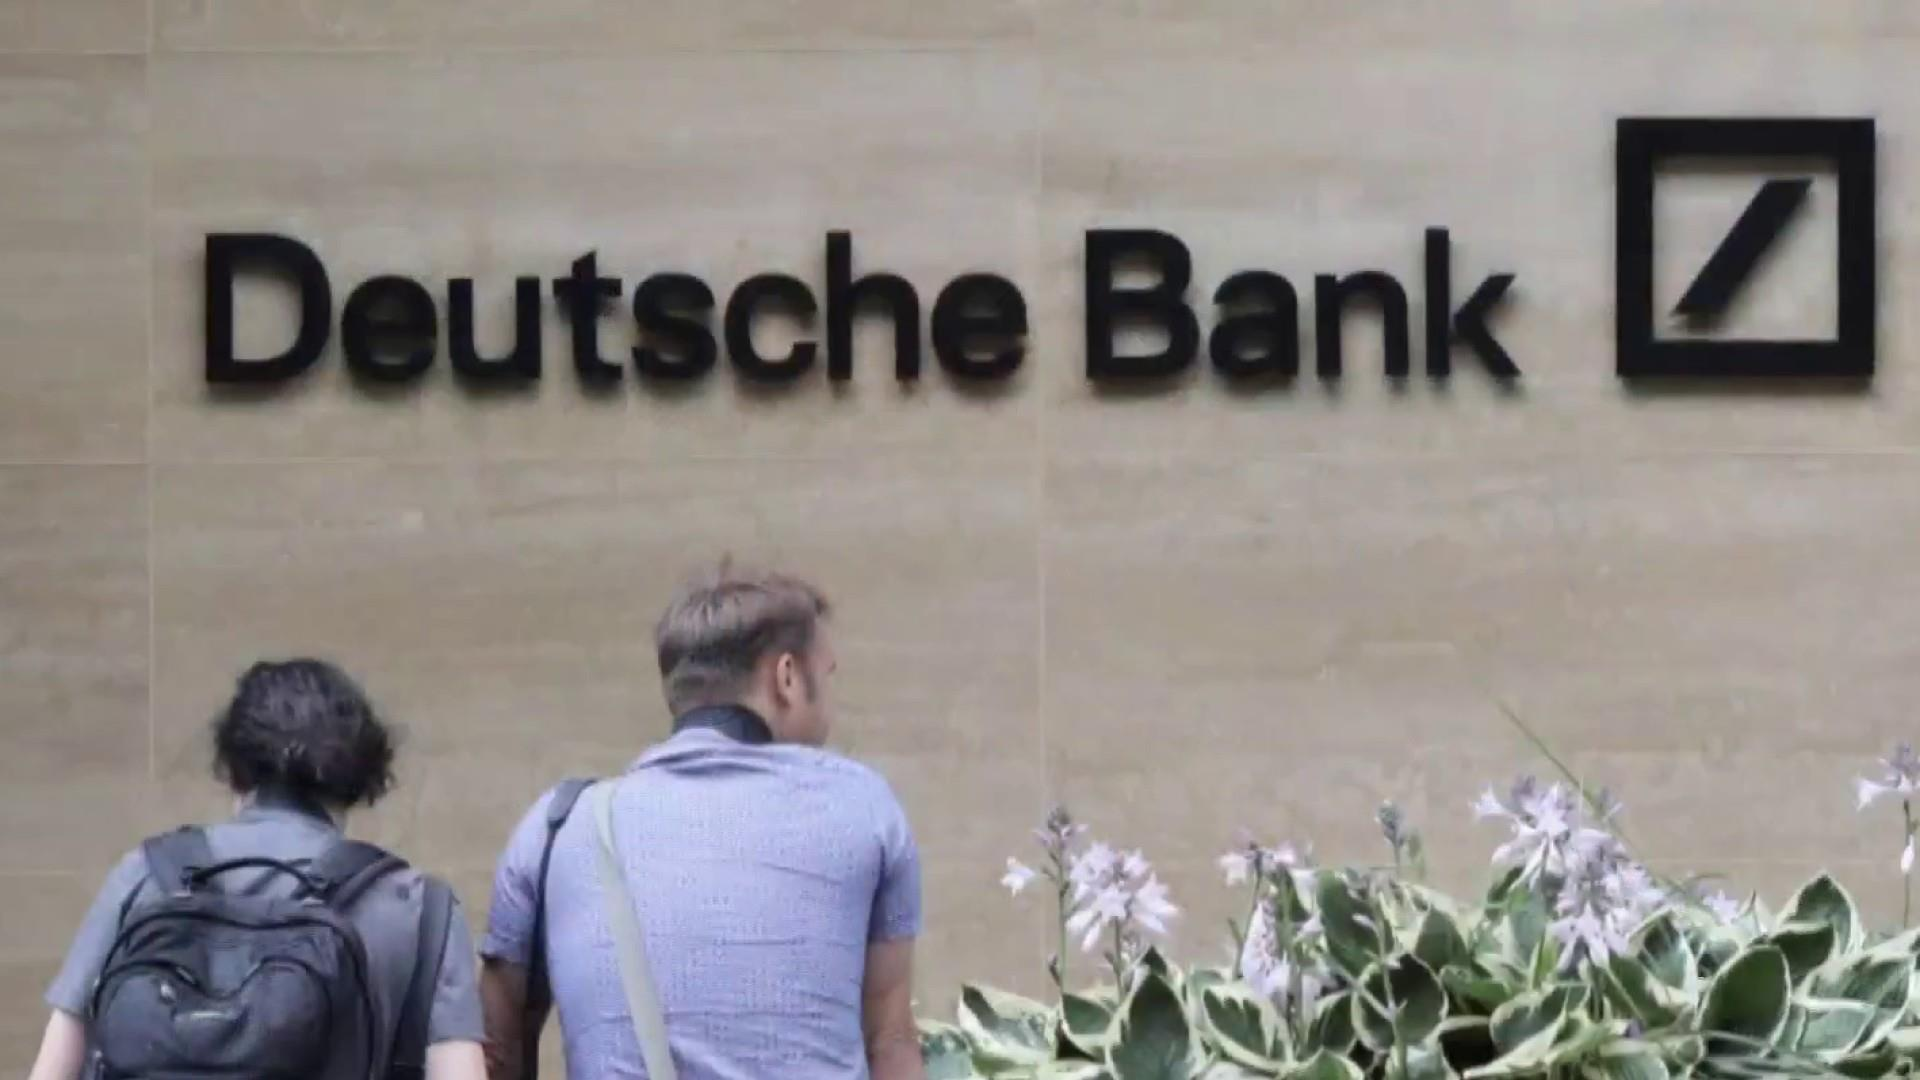 Deutsche Bank confirms it has tax returns tied to Trump